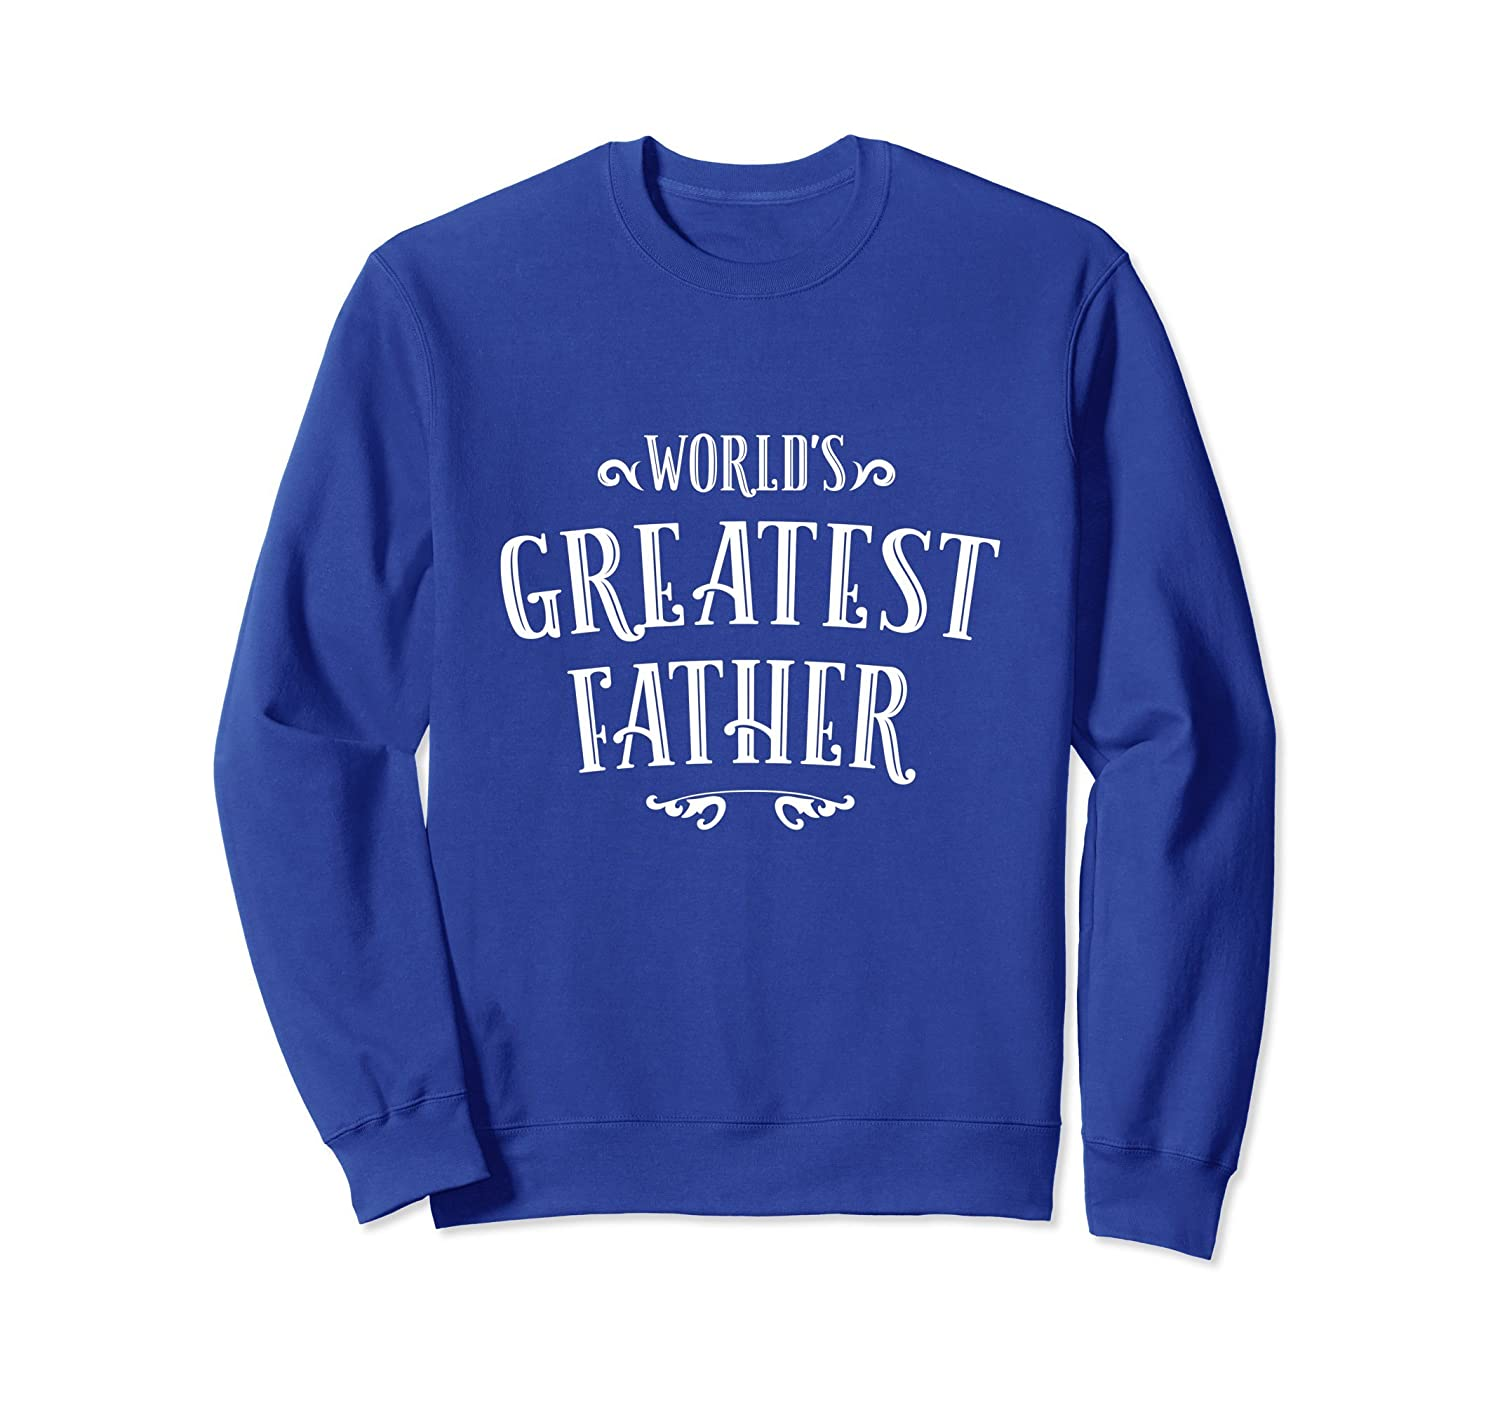 Worlds Greatest Father Sweatshirt Fathers Day Gift for Men- TPT